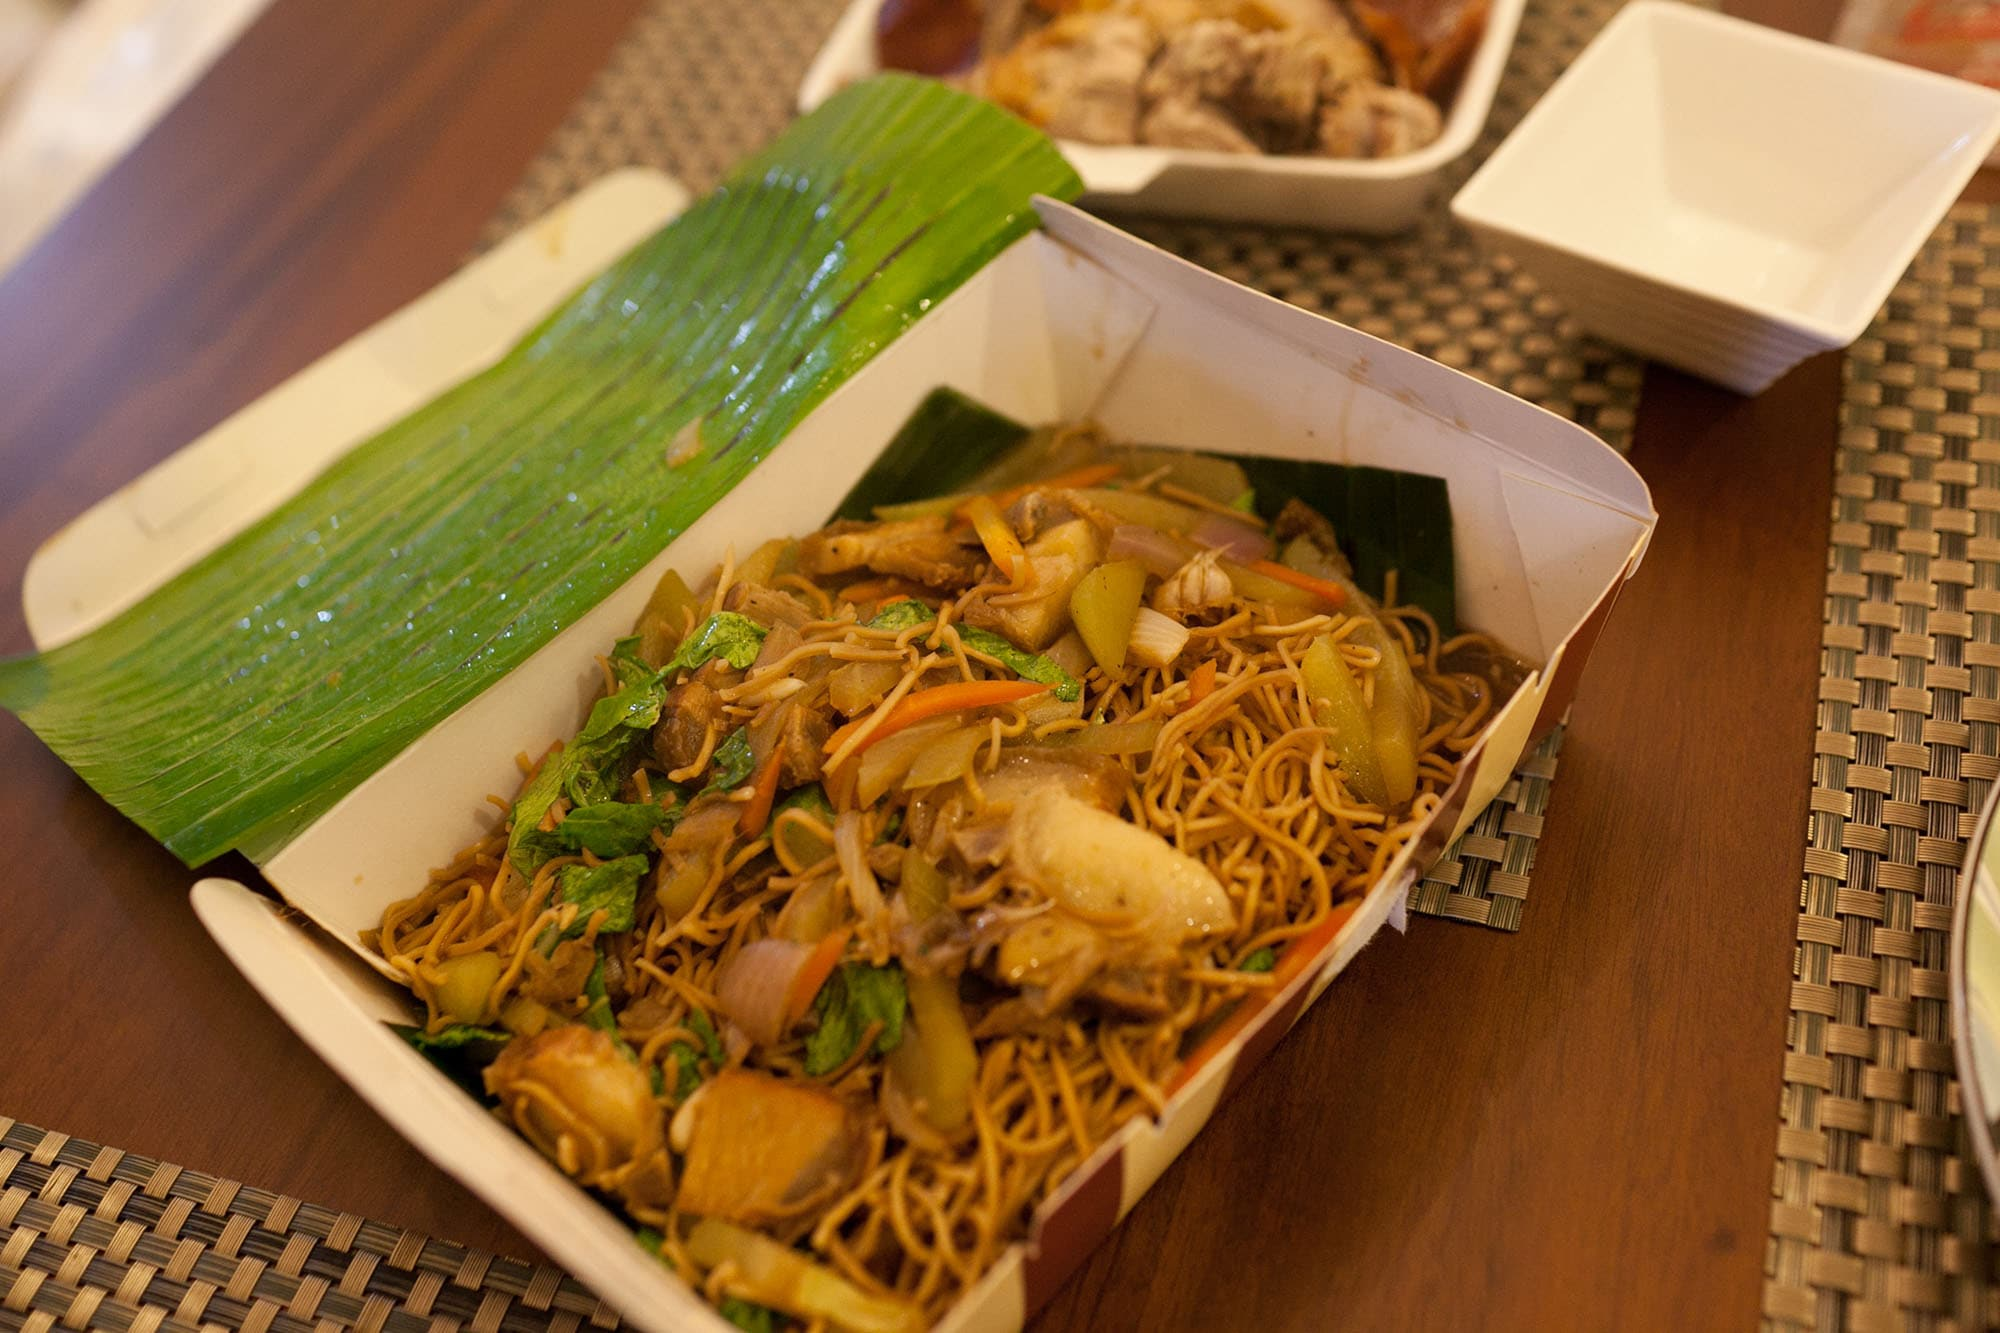 Food in the Philippines: What I ate in The Philippines. Pancit - Noodles in Manila, Philippines.